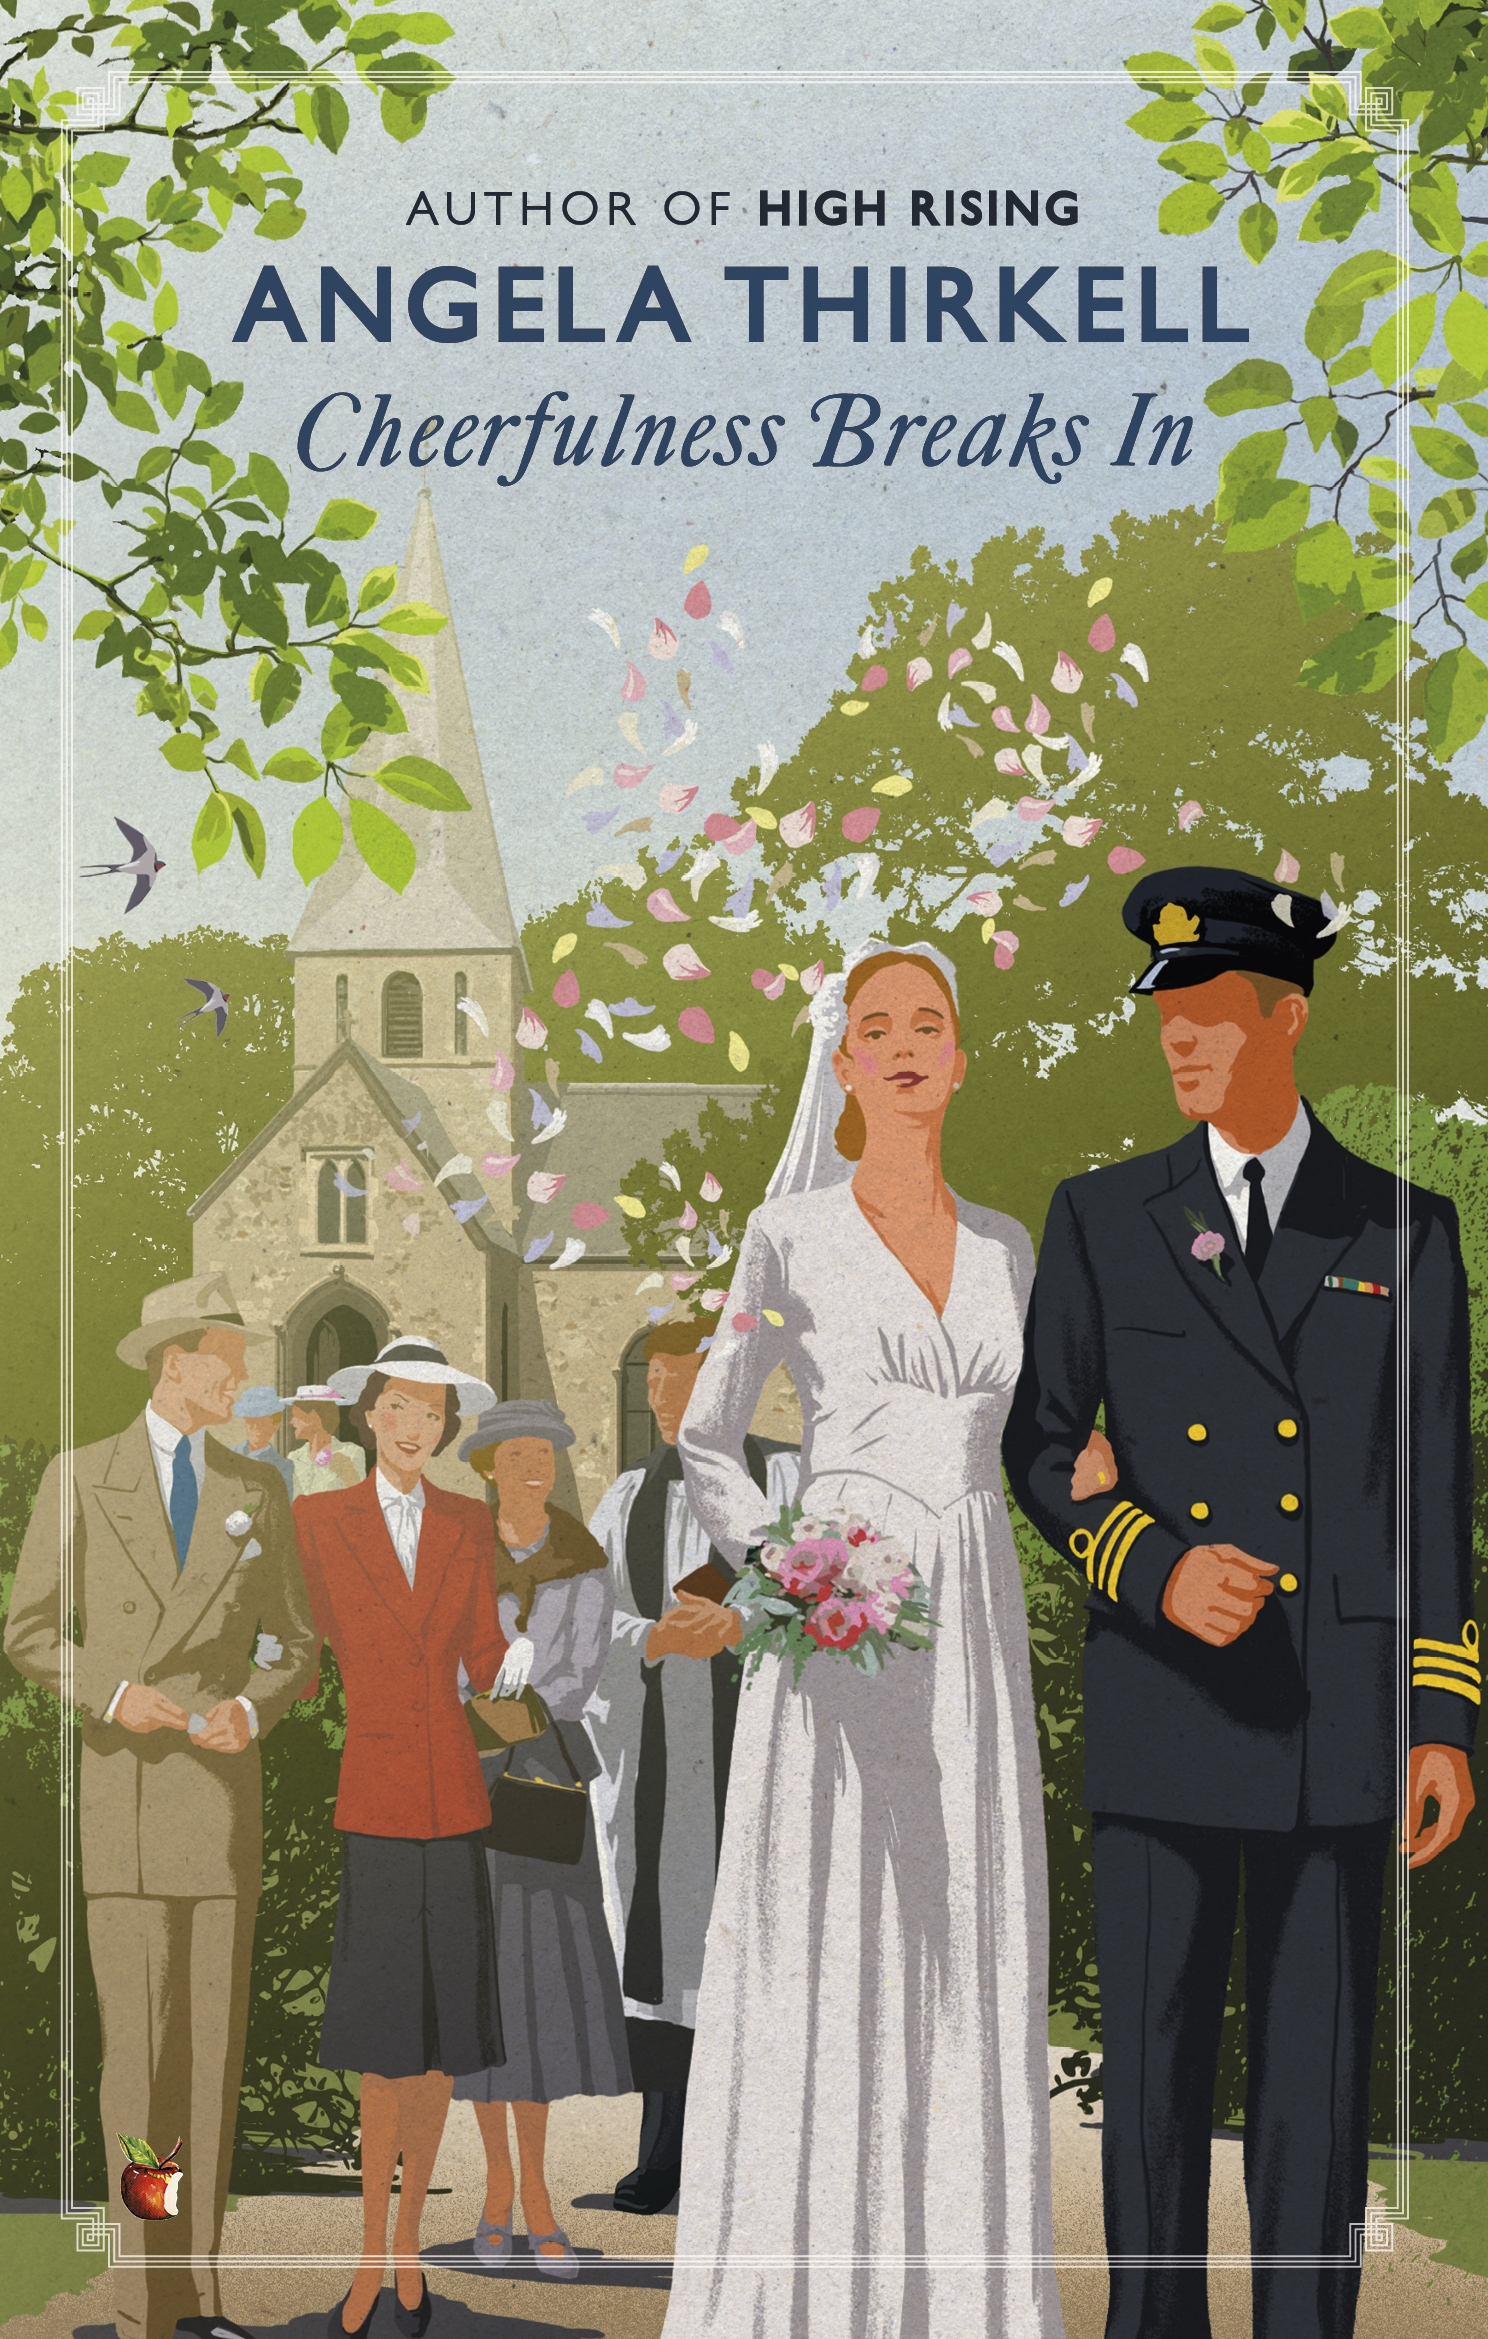 Cheerfulness Breaks In by Angela Thirkell | Hachette UK